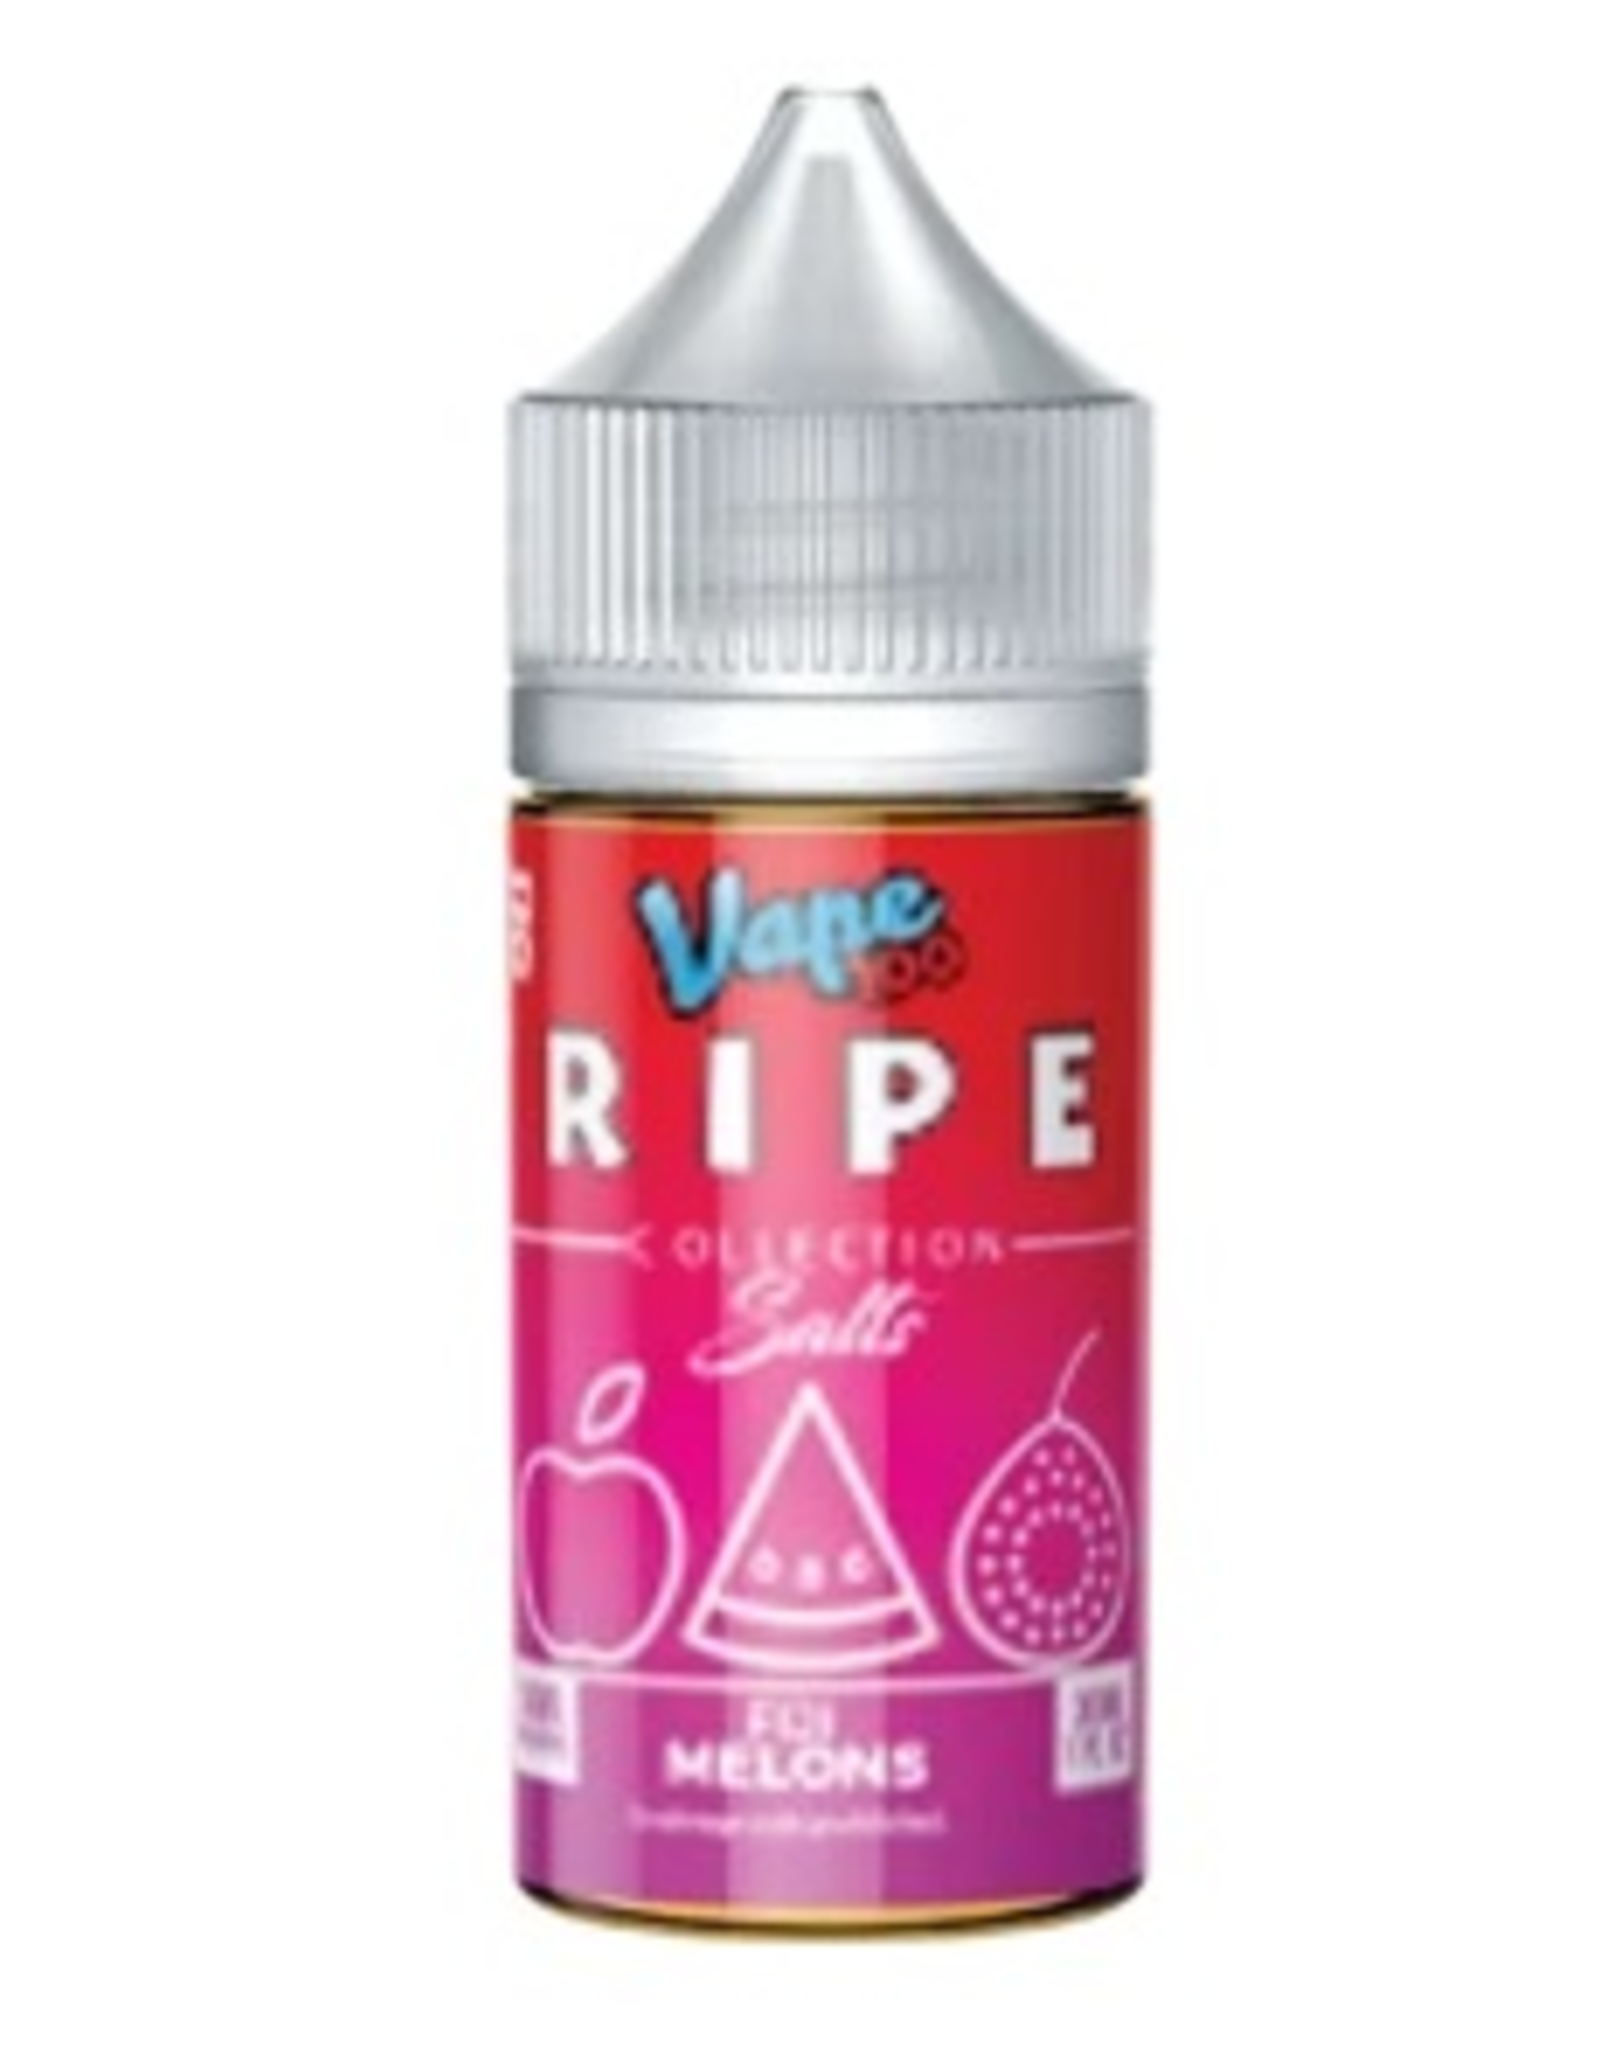 Ripe Collection Fiji Melons Salts By Ripe Collection